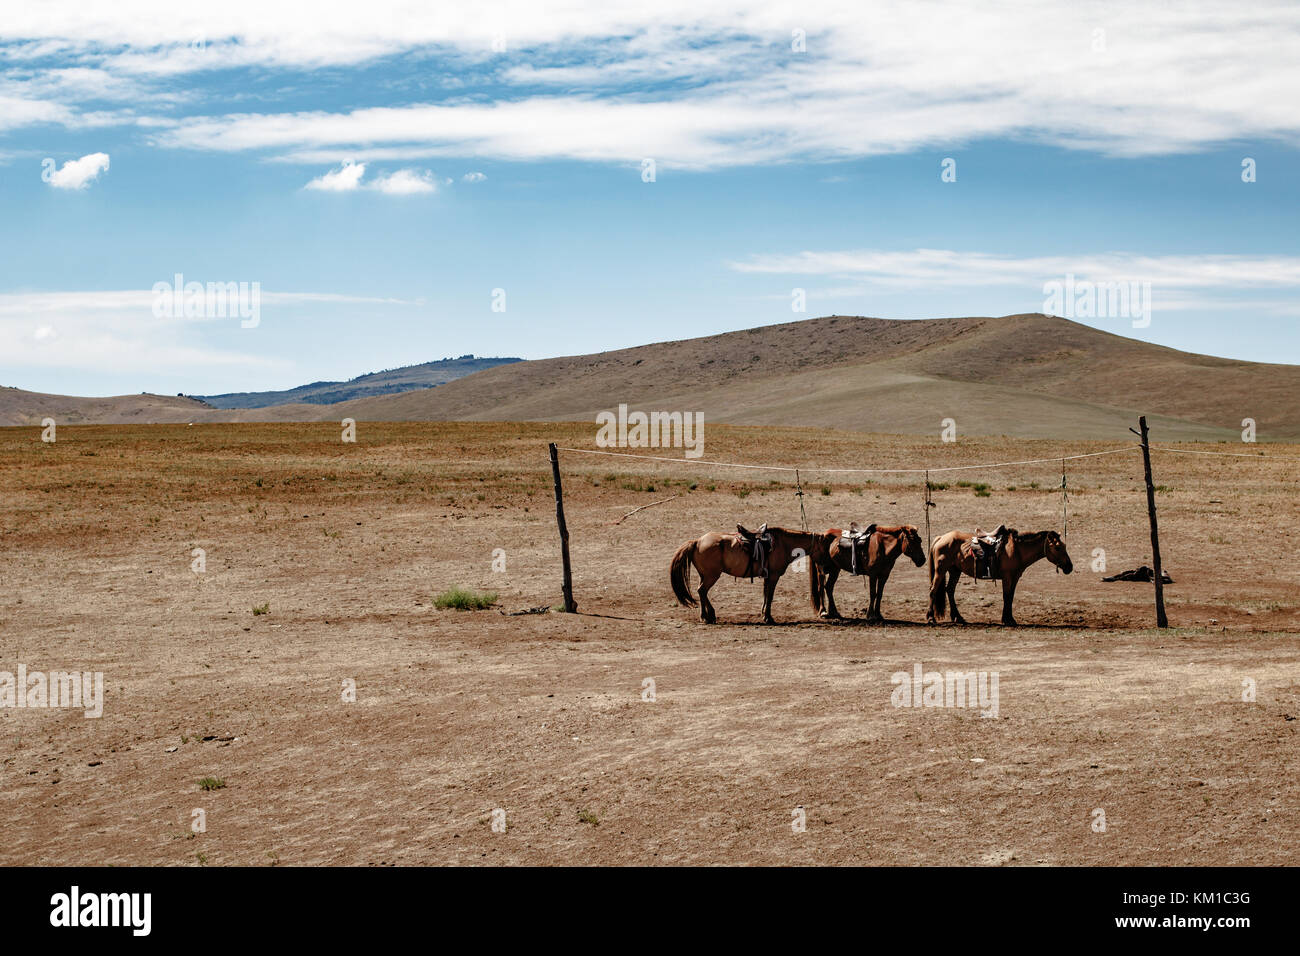 Horses in the national park of Hustai, Mongolia Stock Photo